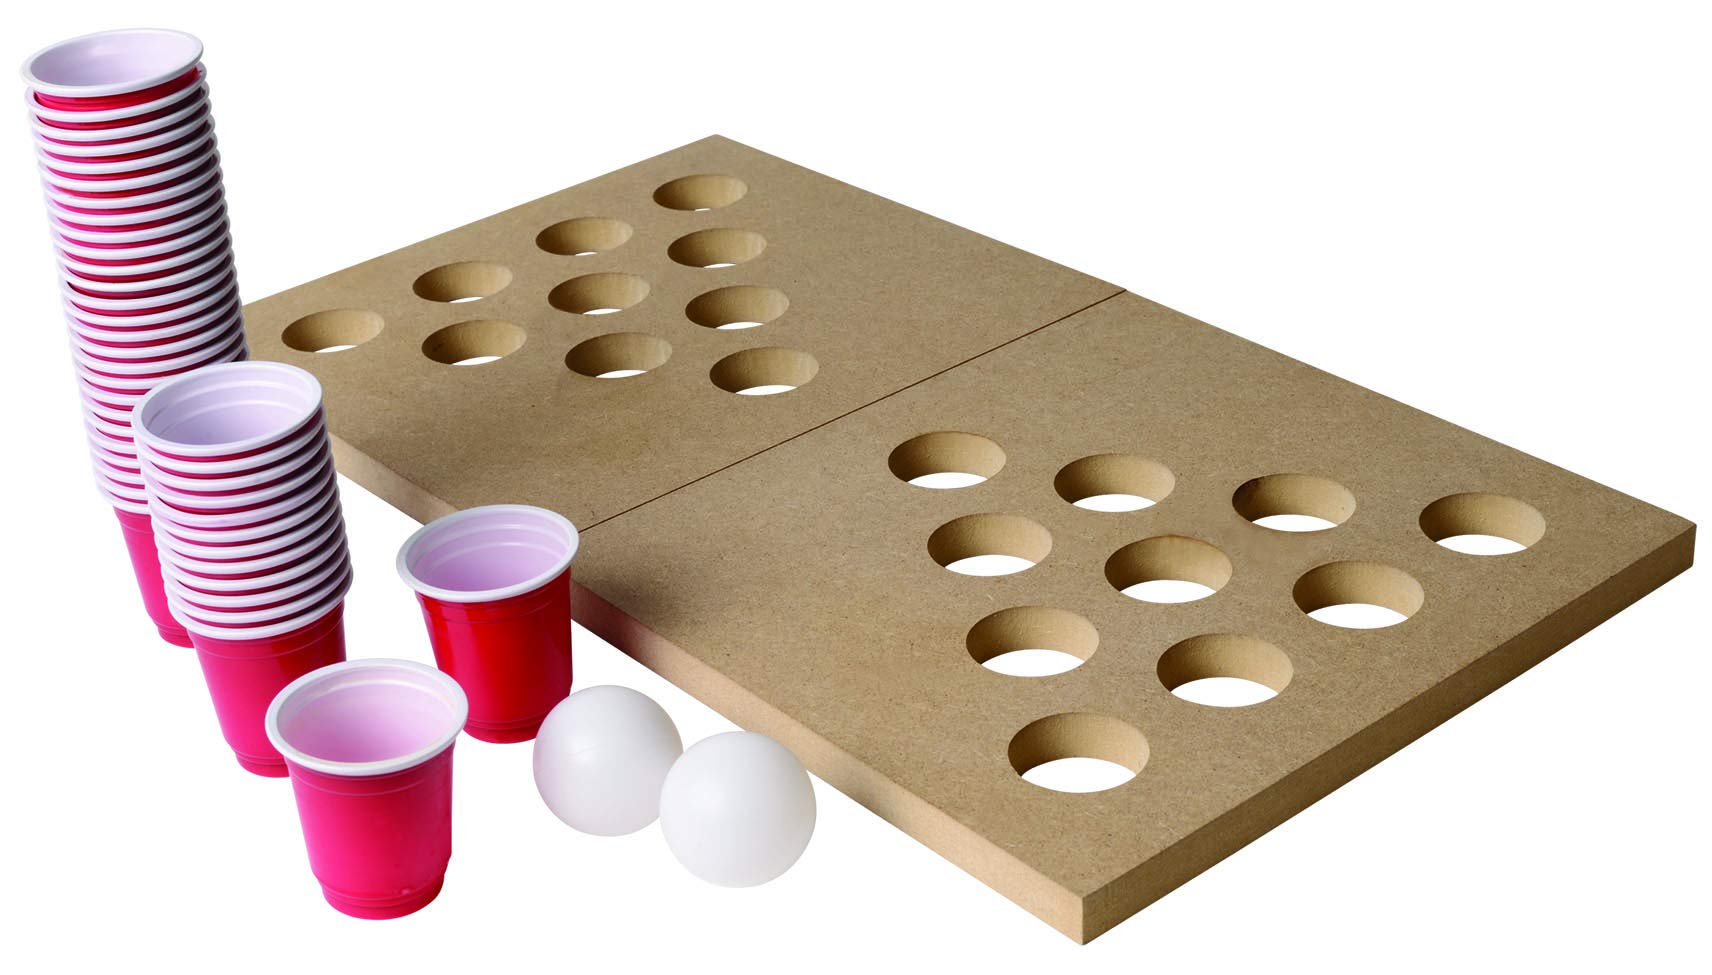 Ideas In Life Mini Wooden Beer Pong or Shot Pong Set - Foldable Portable Travel Board Classic Juice Party Drinking Game Complete Set by Ideas In Life